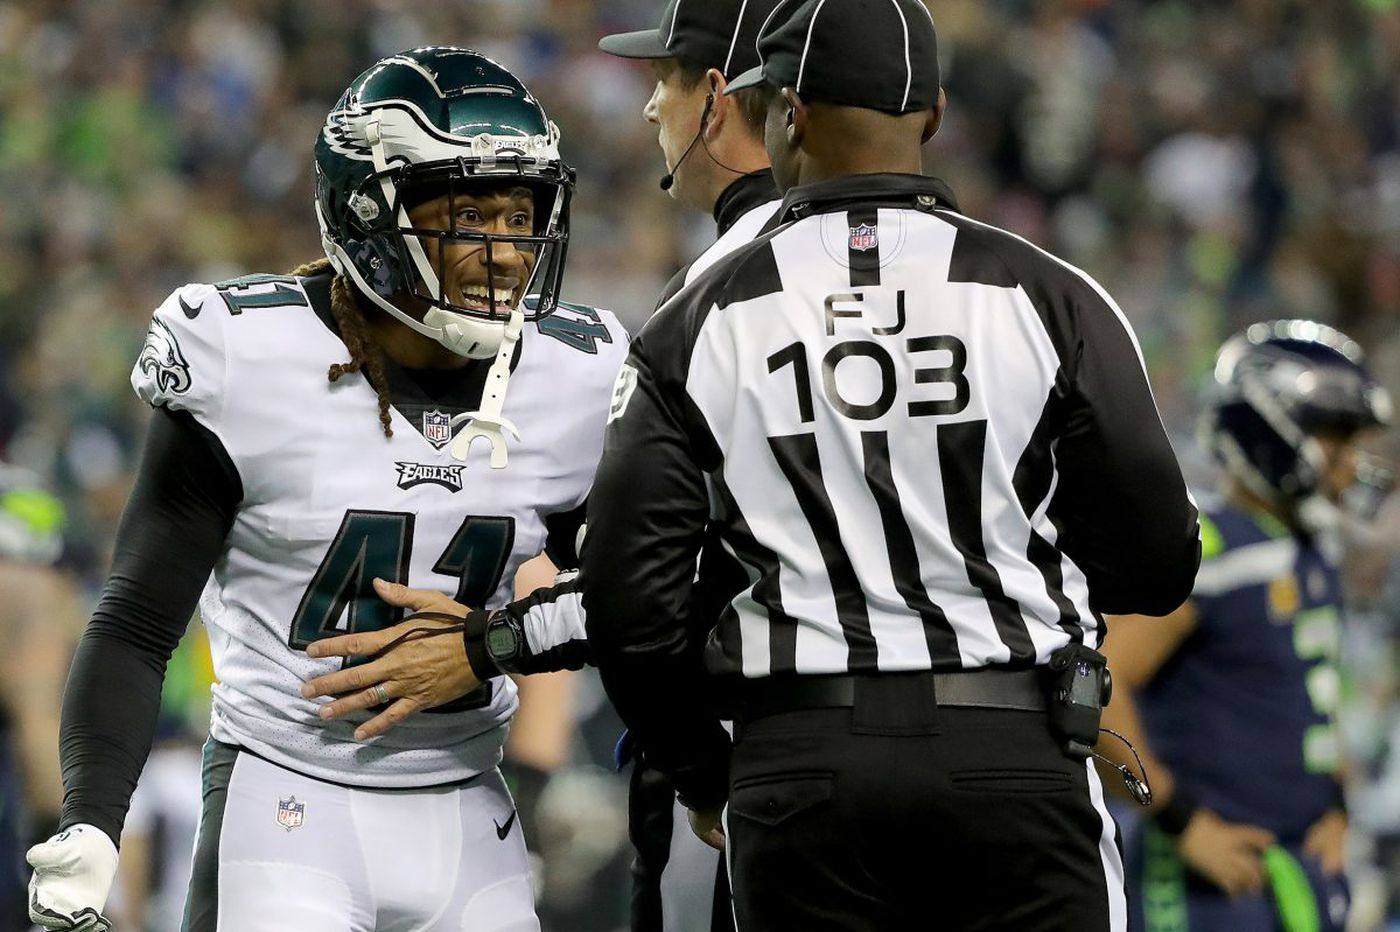 Eagles' Doug Pederson looks to tighten up, in a laid-back locale